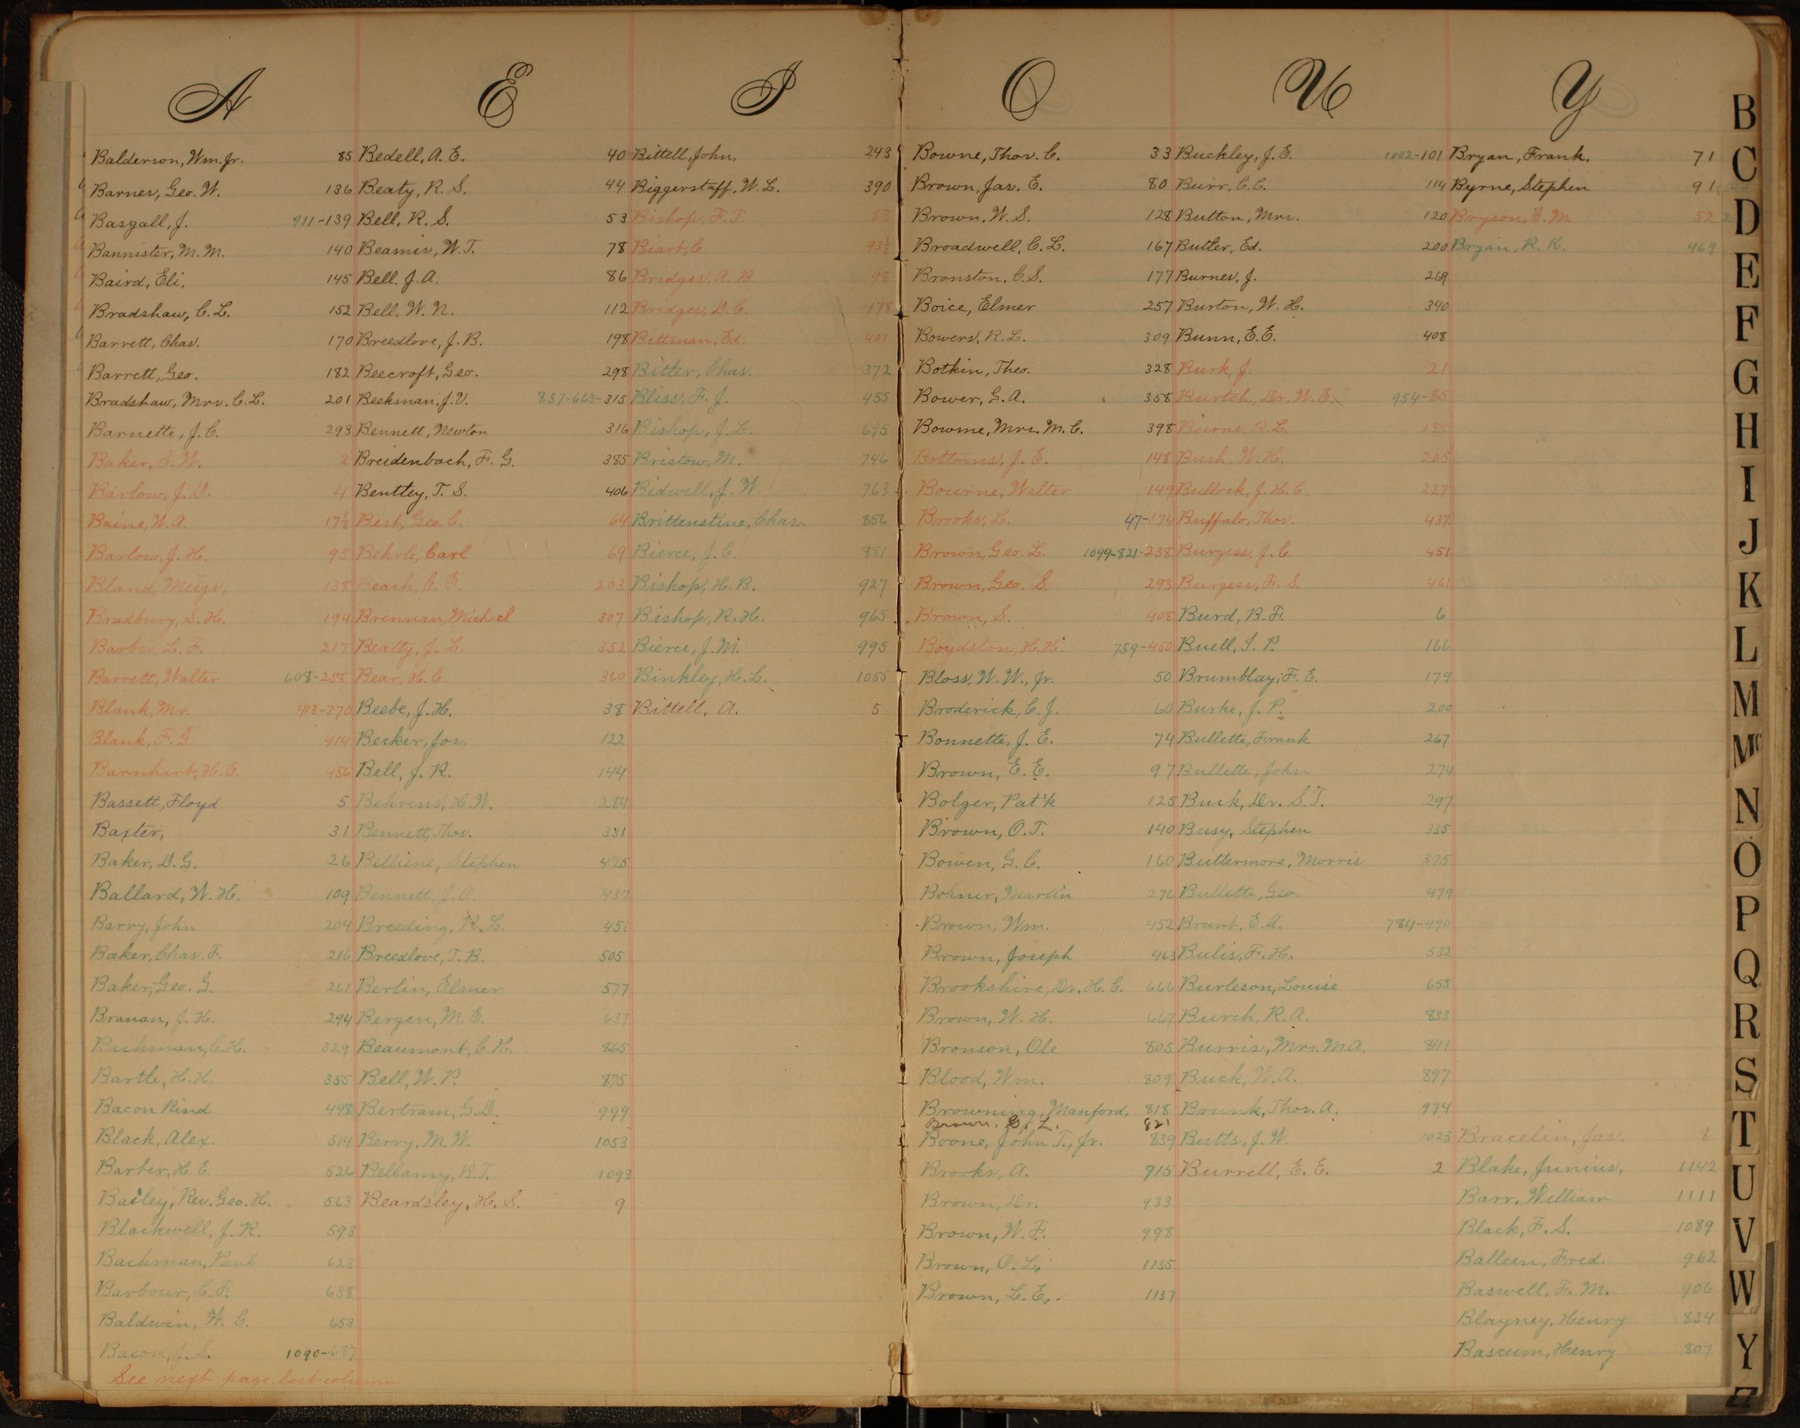 Hermon S. Major papers - Index B